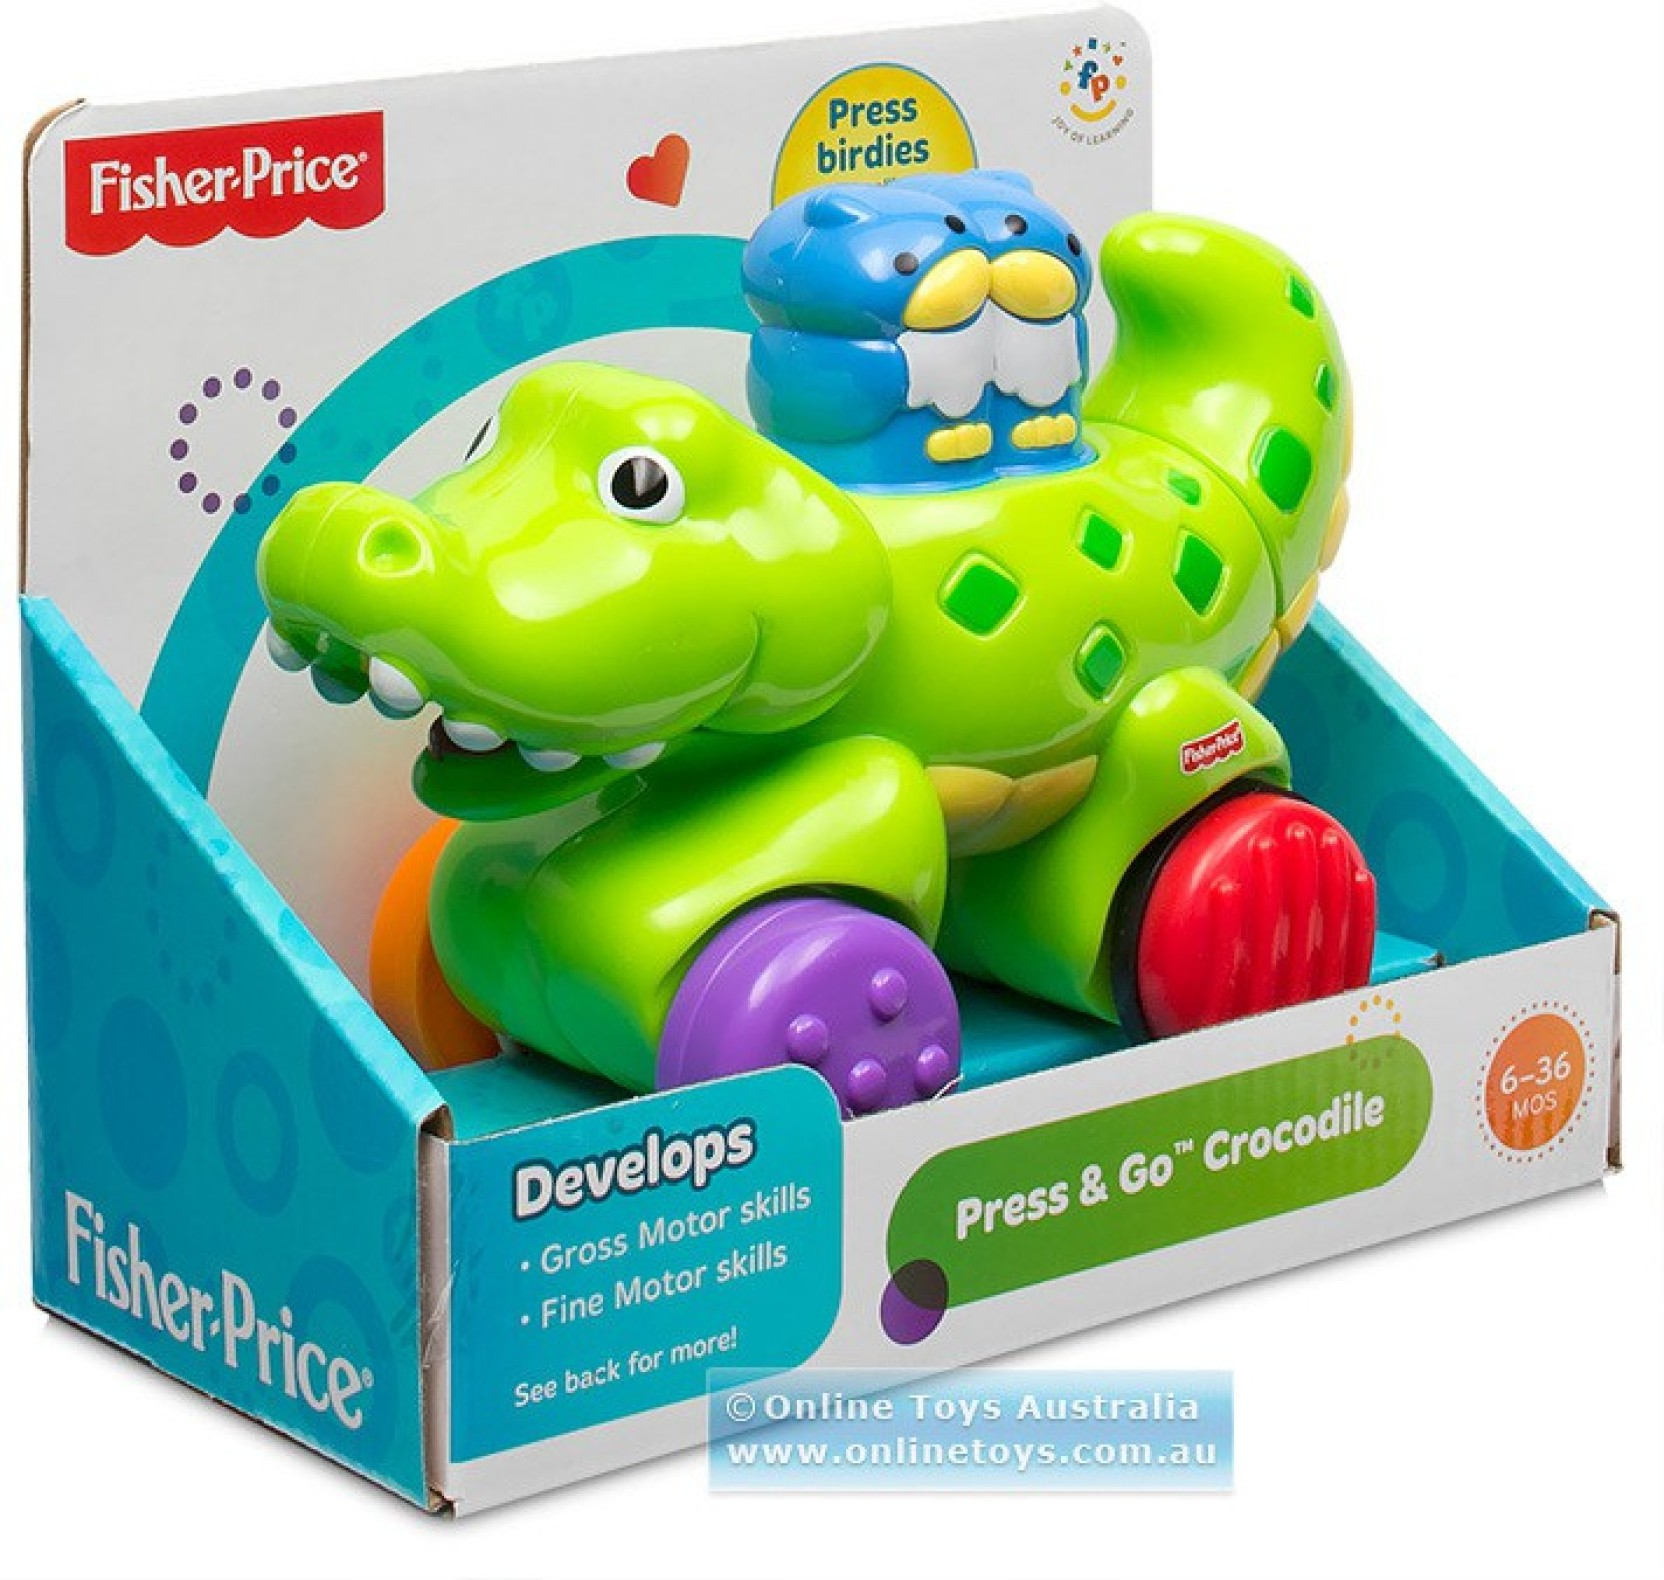 Fisher Price Press & Go Crocodile Press & Go Crocodile shop